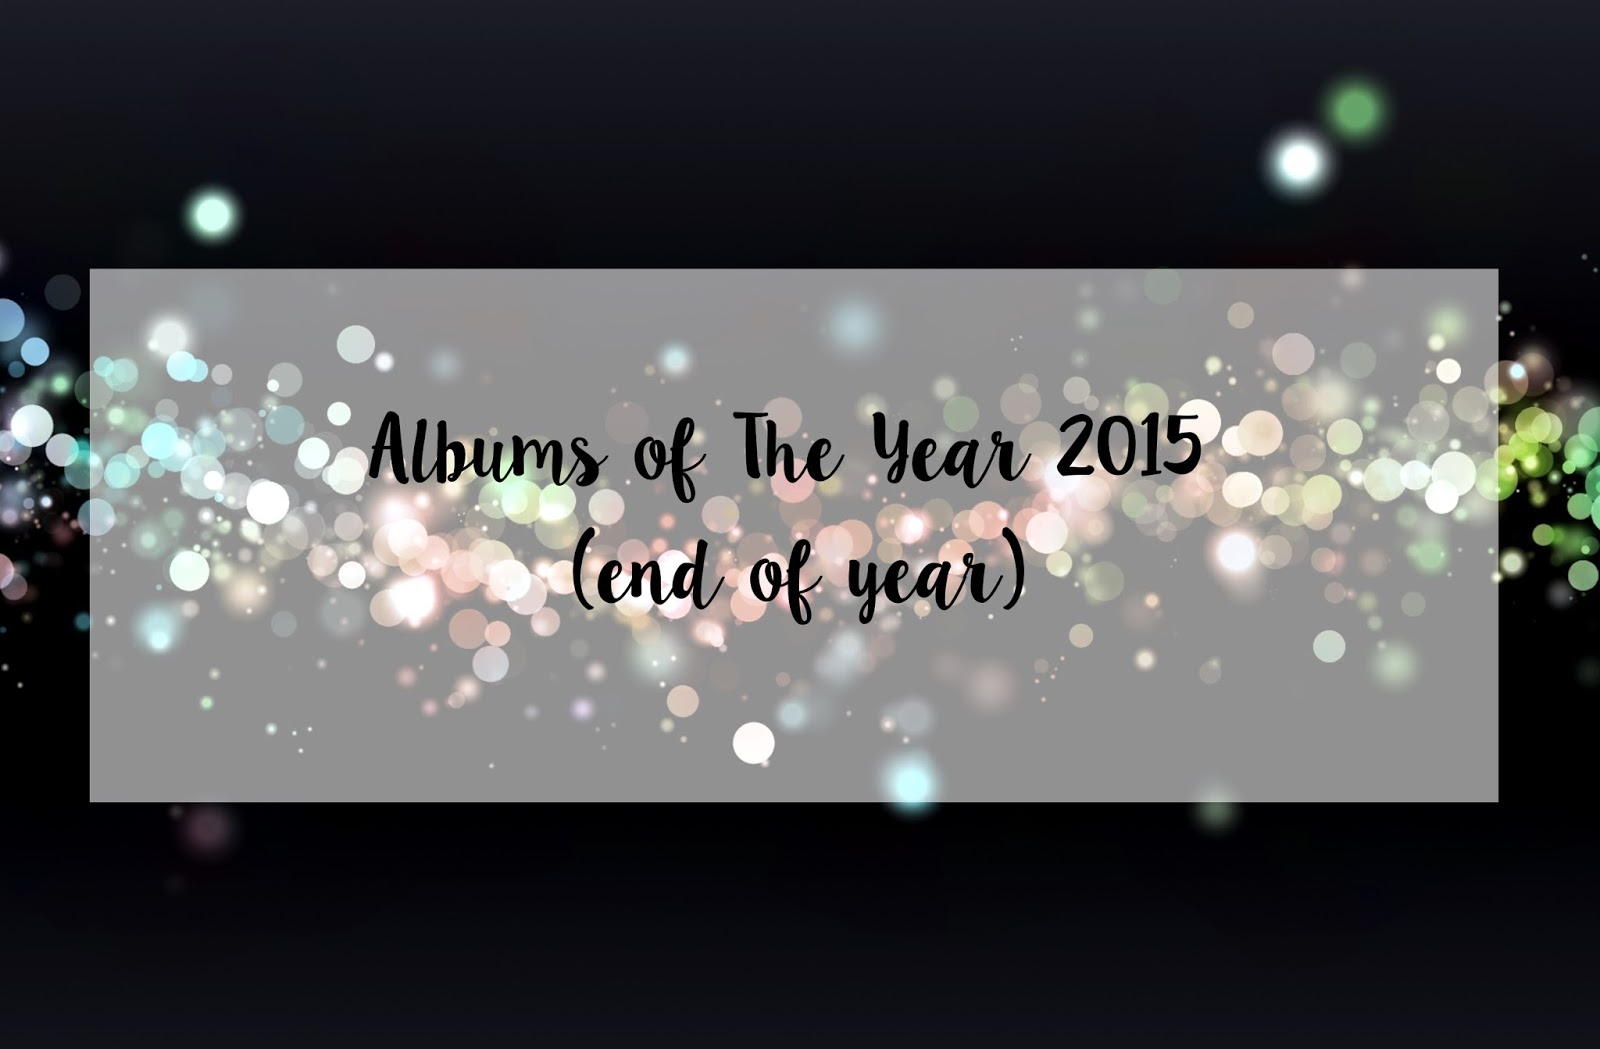 Albums of The Year 2015 (End of Year)